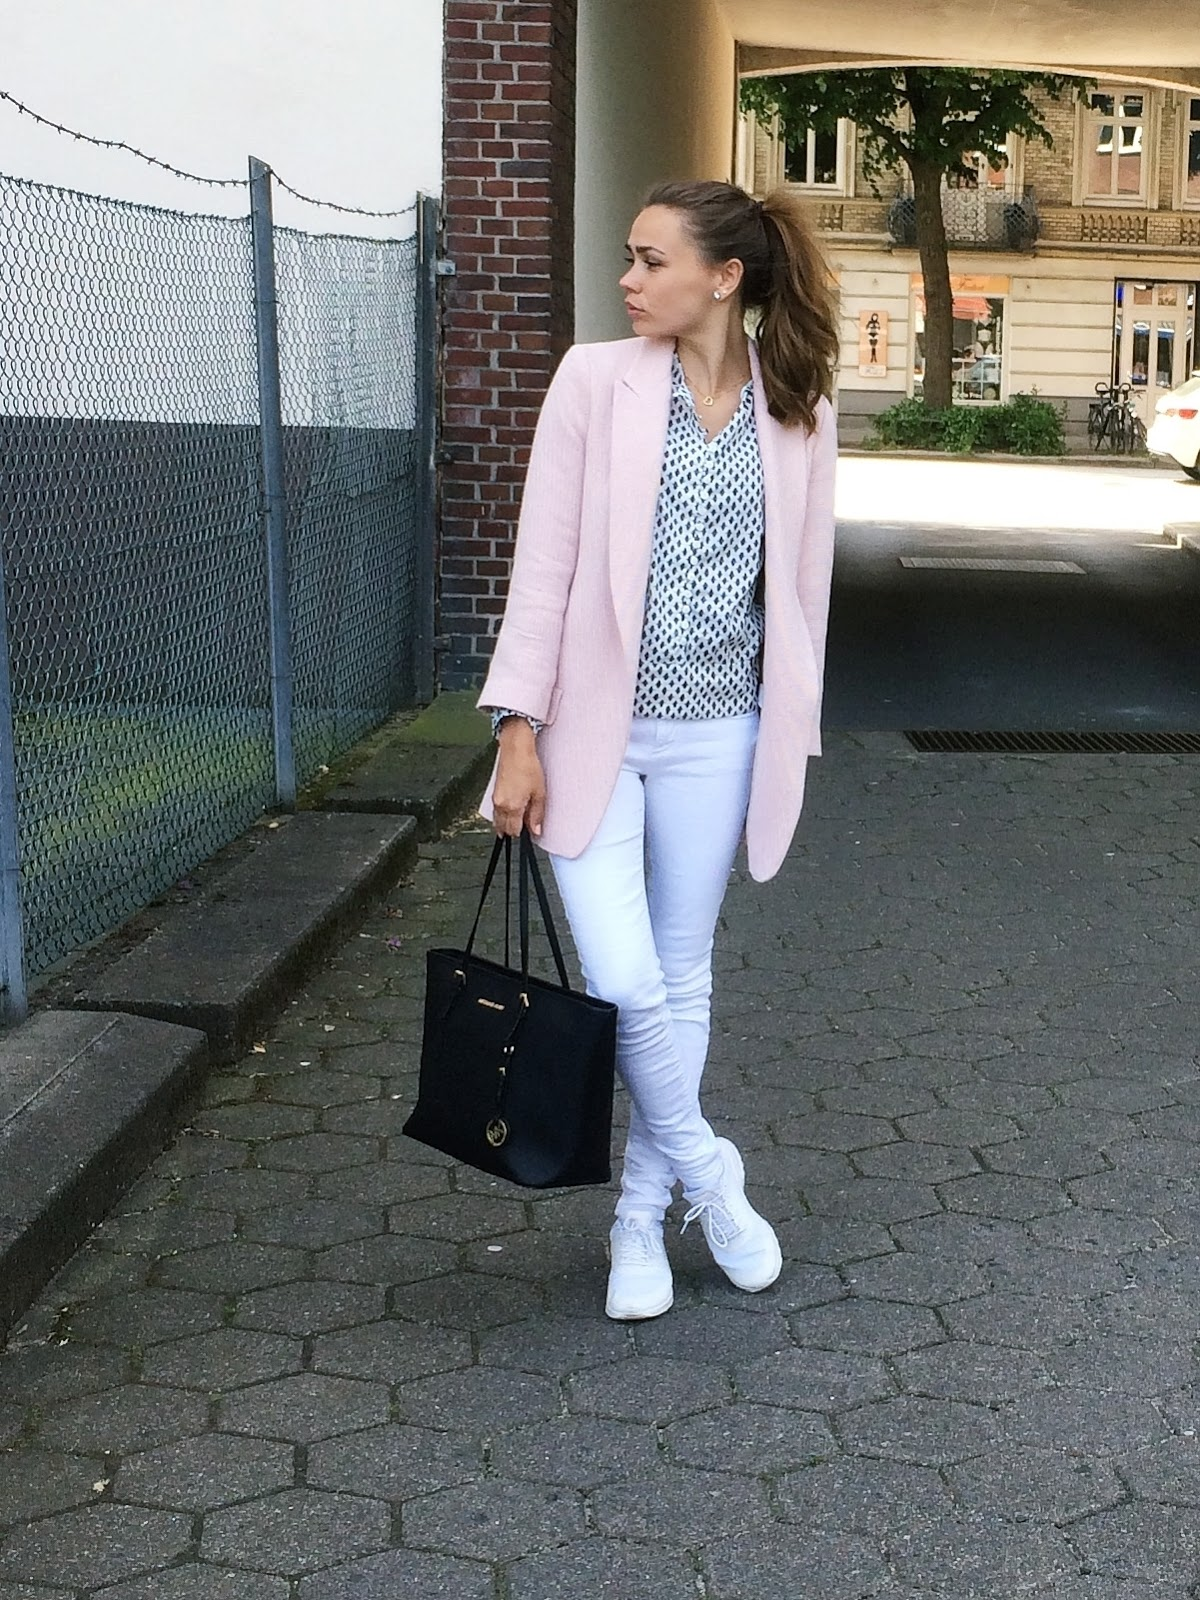 Weiße Hose Outfit